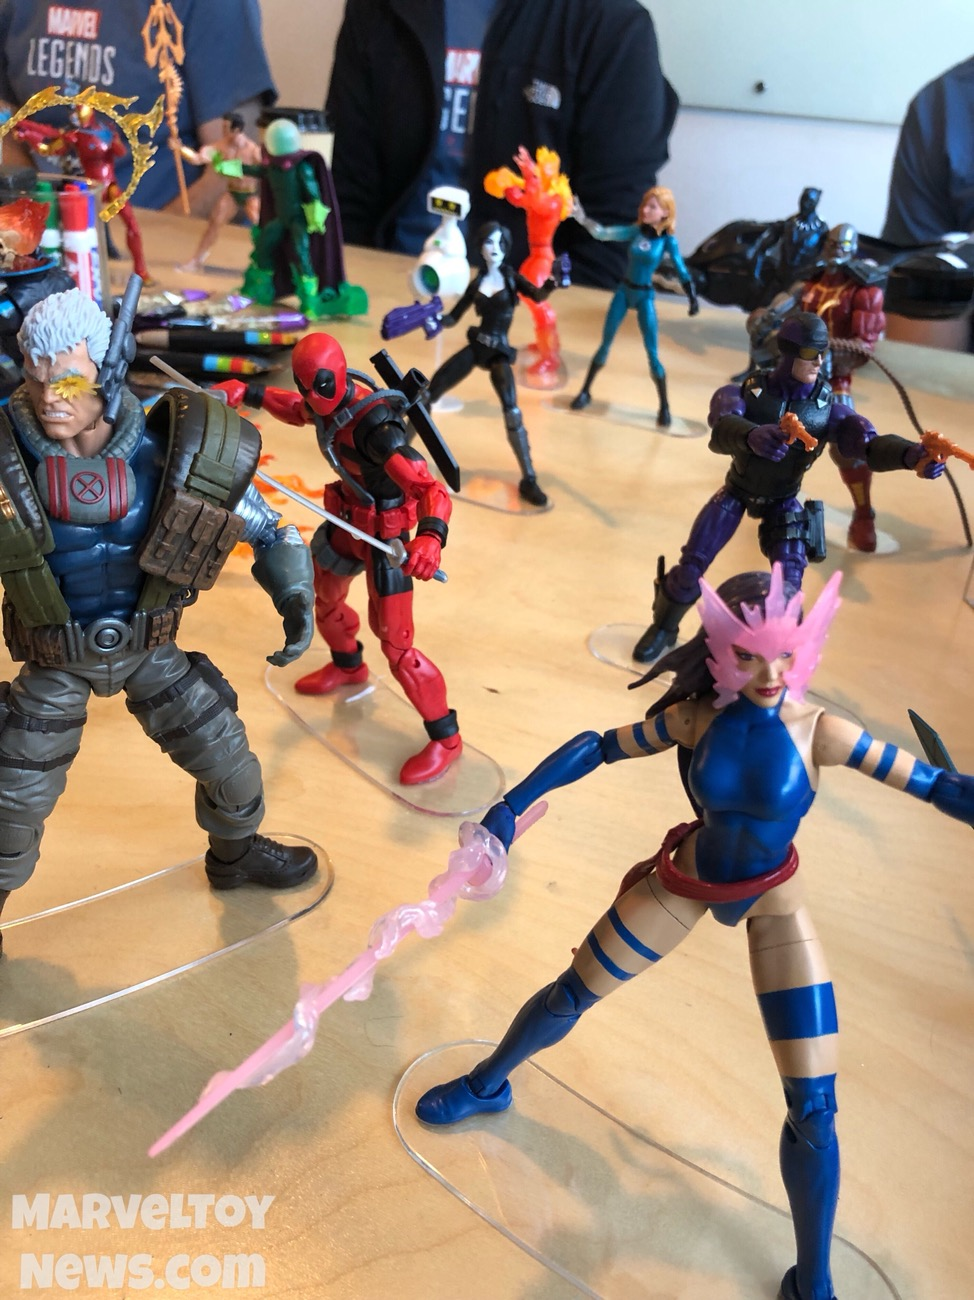 Marvel Toys 2018 : Marvel legends figures hi res photos from nycc